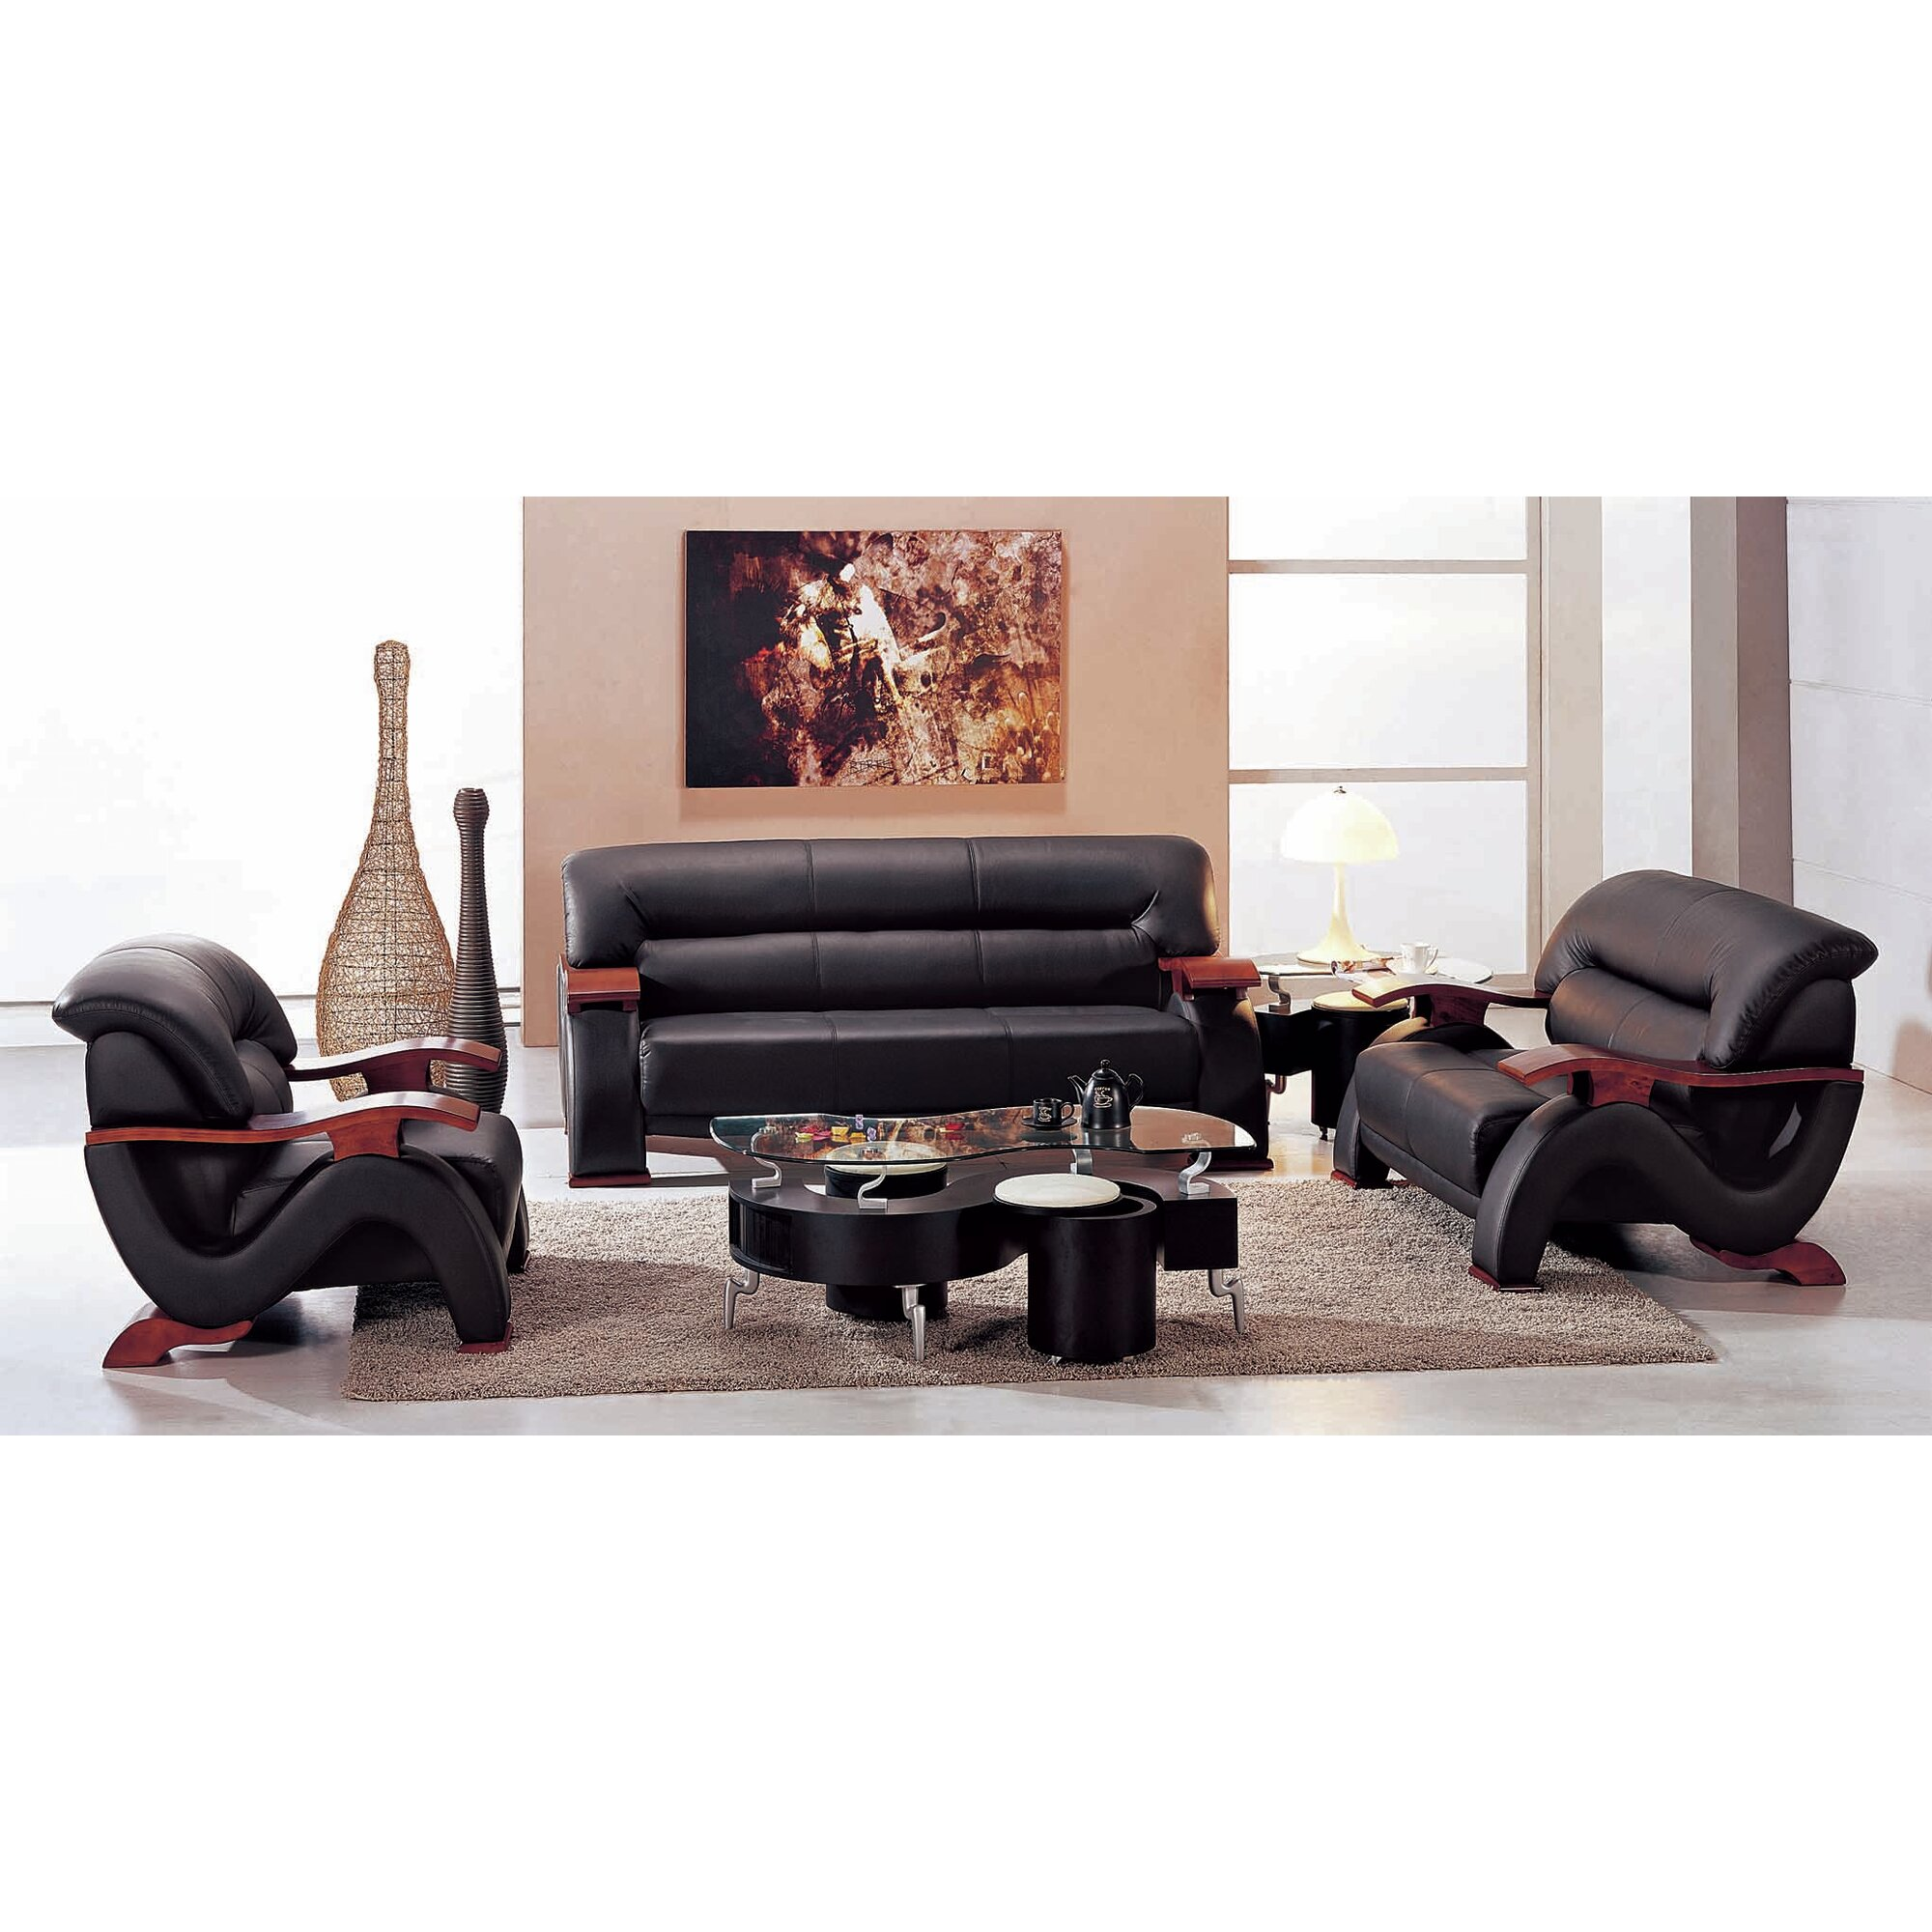 3 Piece Living Room Set Furniture Living Room Furniture Living